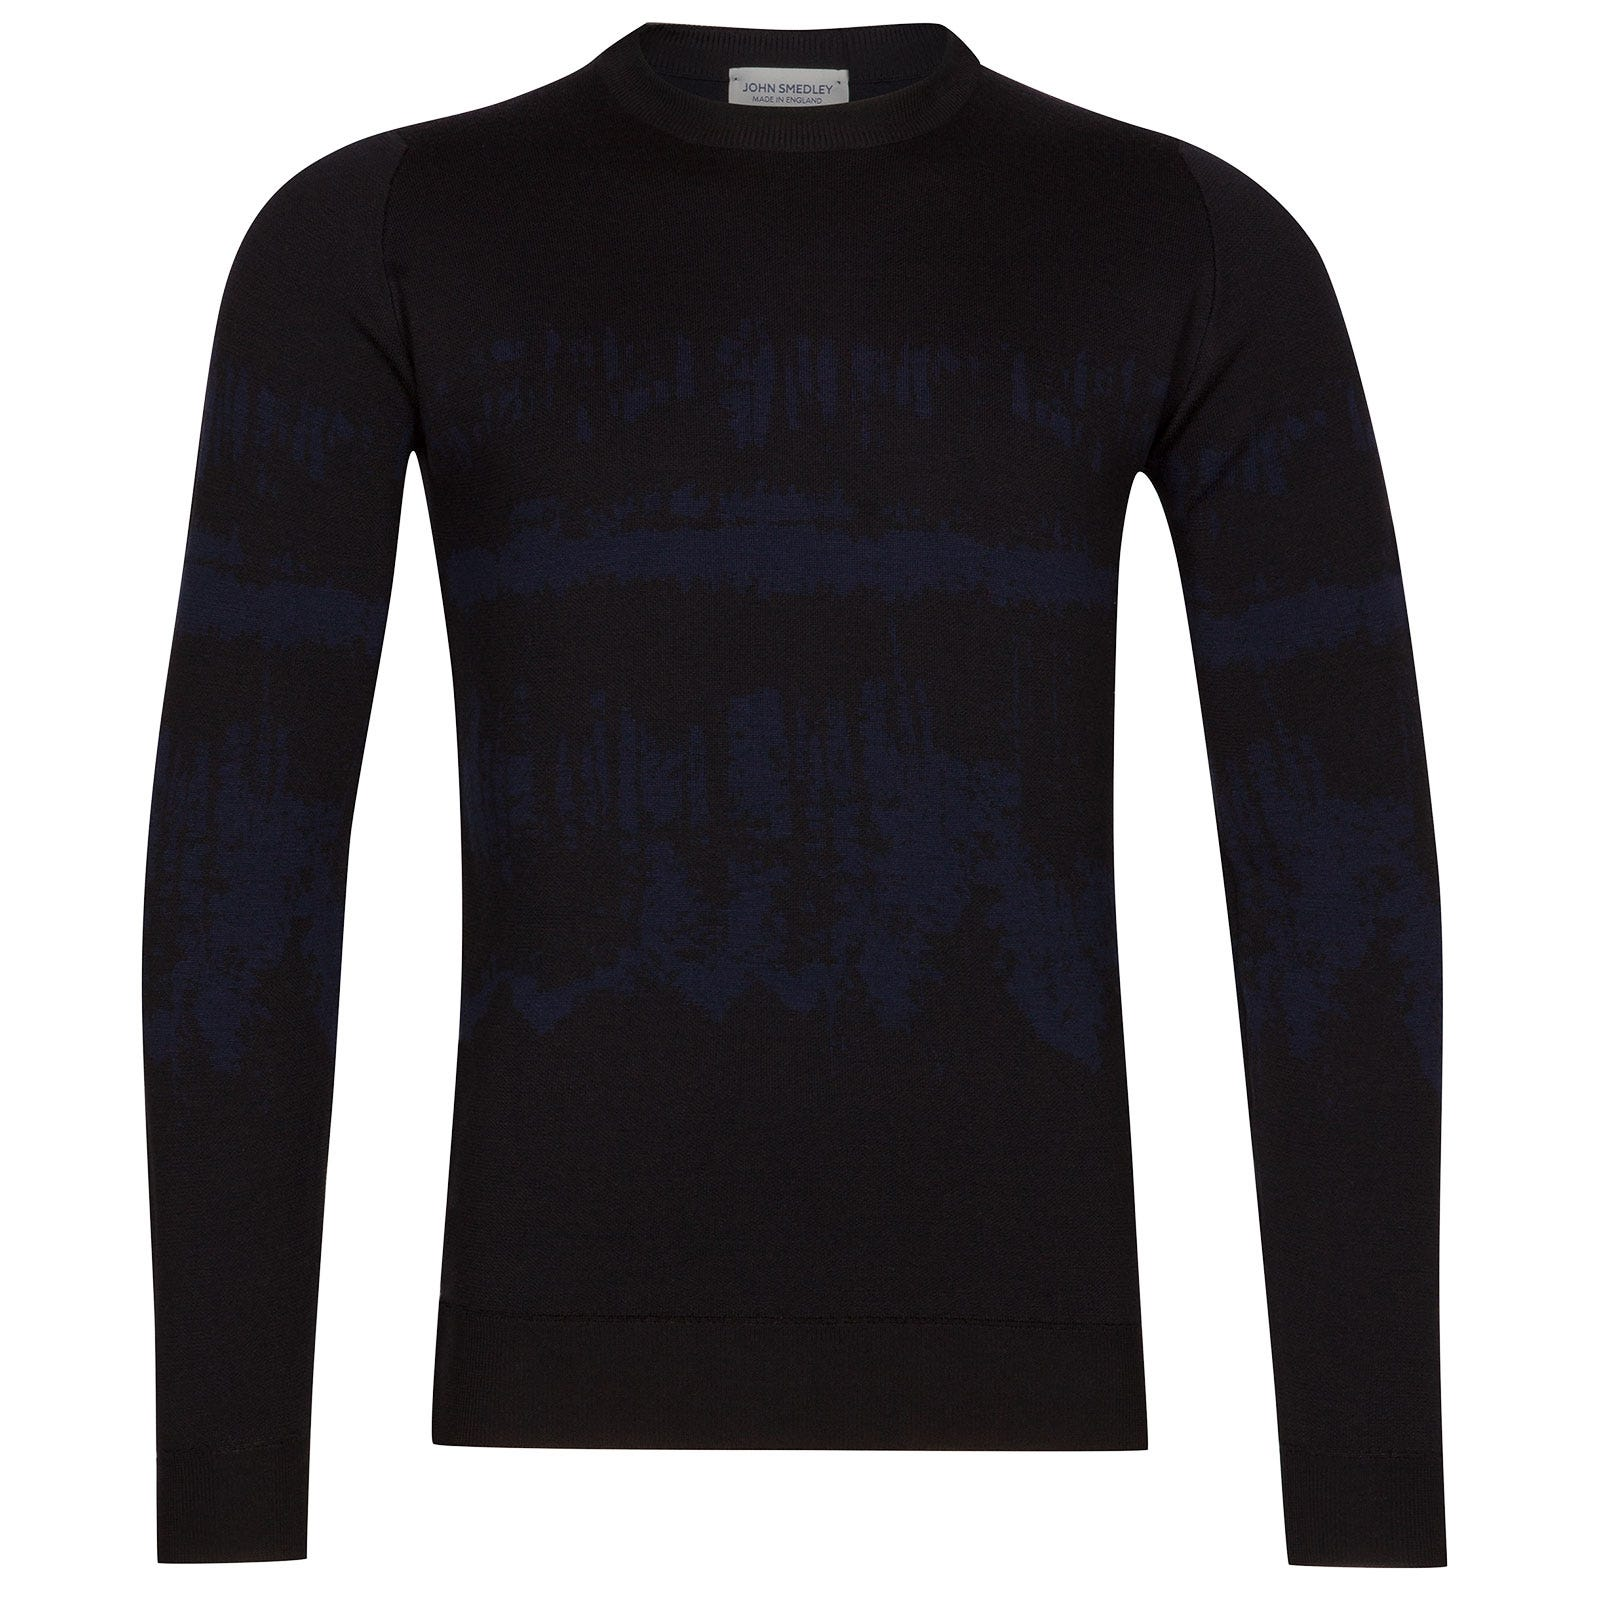 John Smedley girling Merino Wool Pullover in Black/Midnight-L